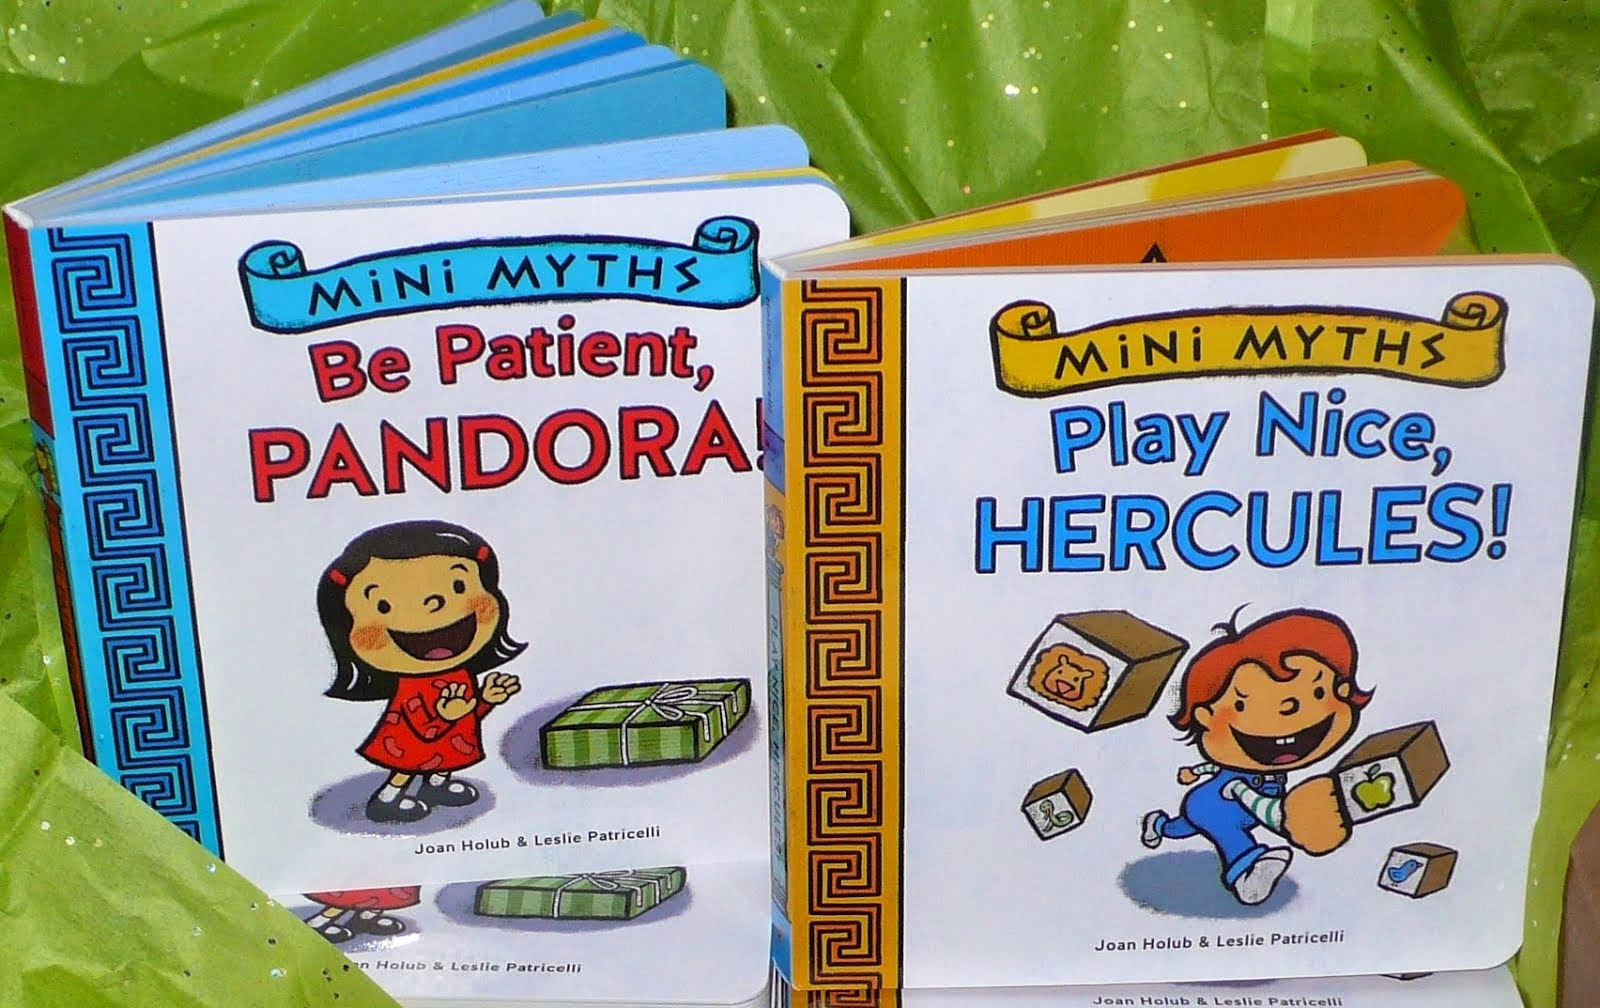 Mini Myths: Play Nice, Hercules! & Be Patient, Pandora!